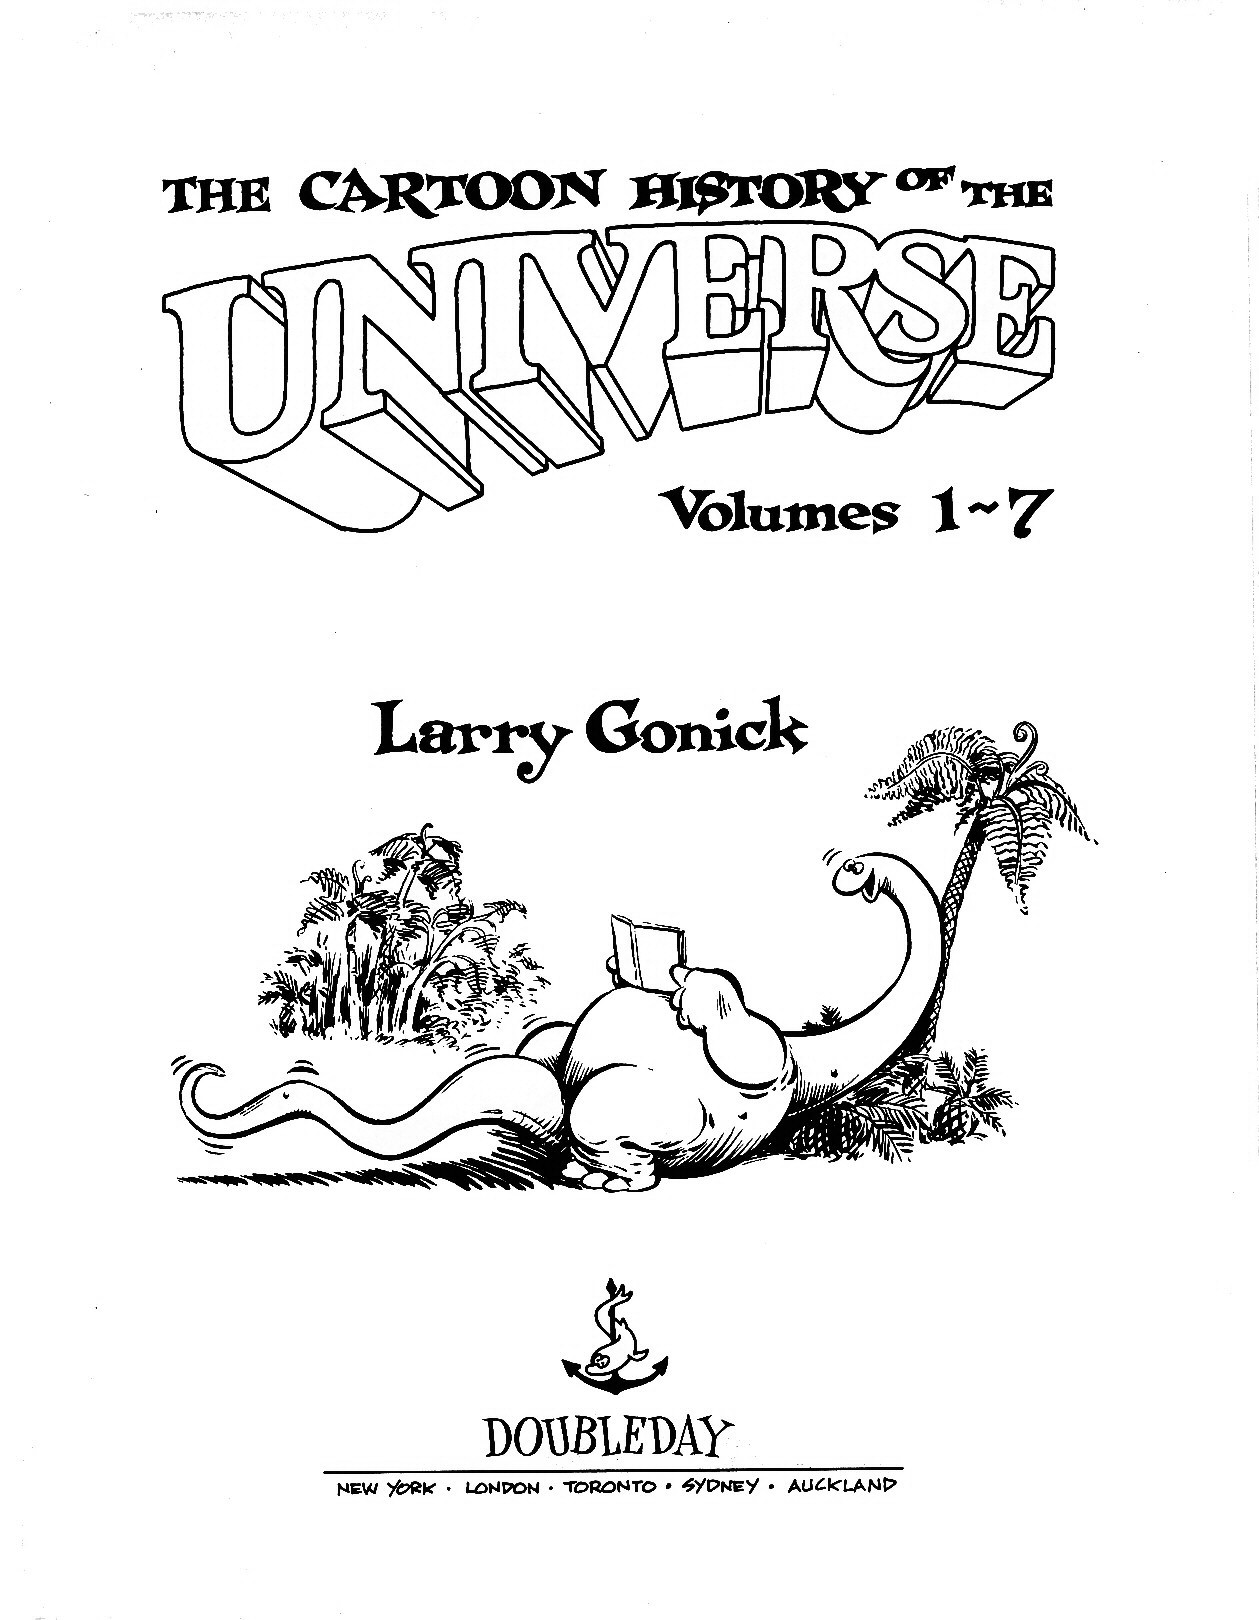 Read online The Cartoon History of the Universe comic -  Issue #1 - 3